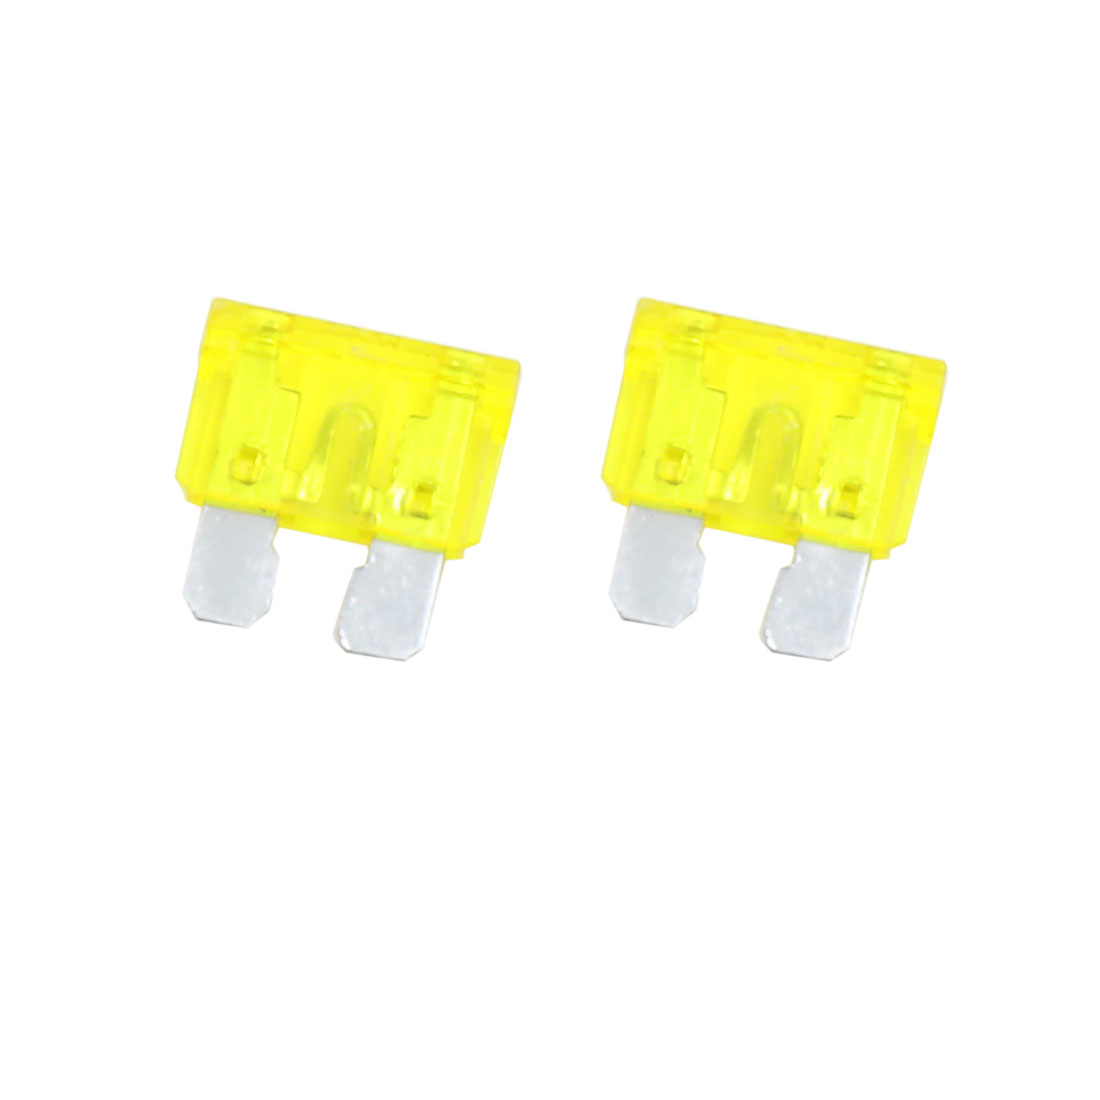 2 Set DC 32V 10 Gauge Car In Line ATC ATO Blade Style Fuse Holder with 20A Fuse - image 1 of 5